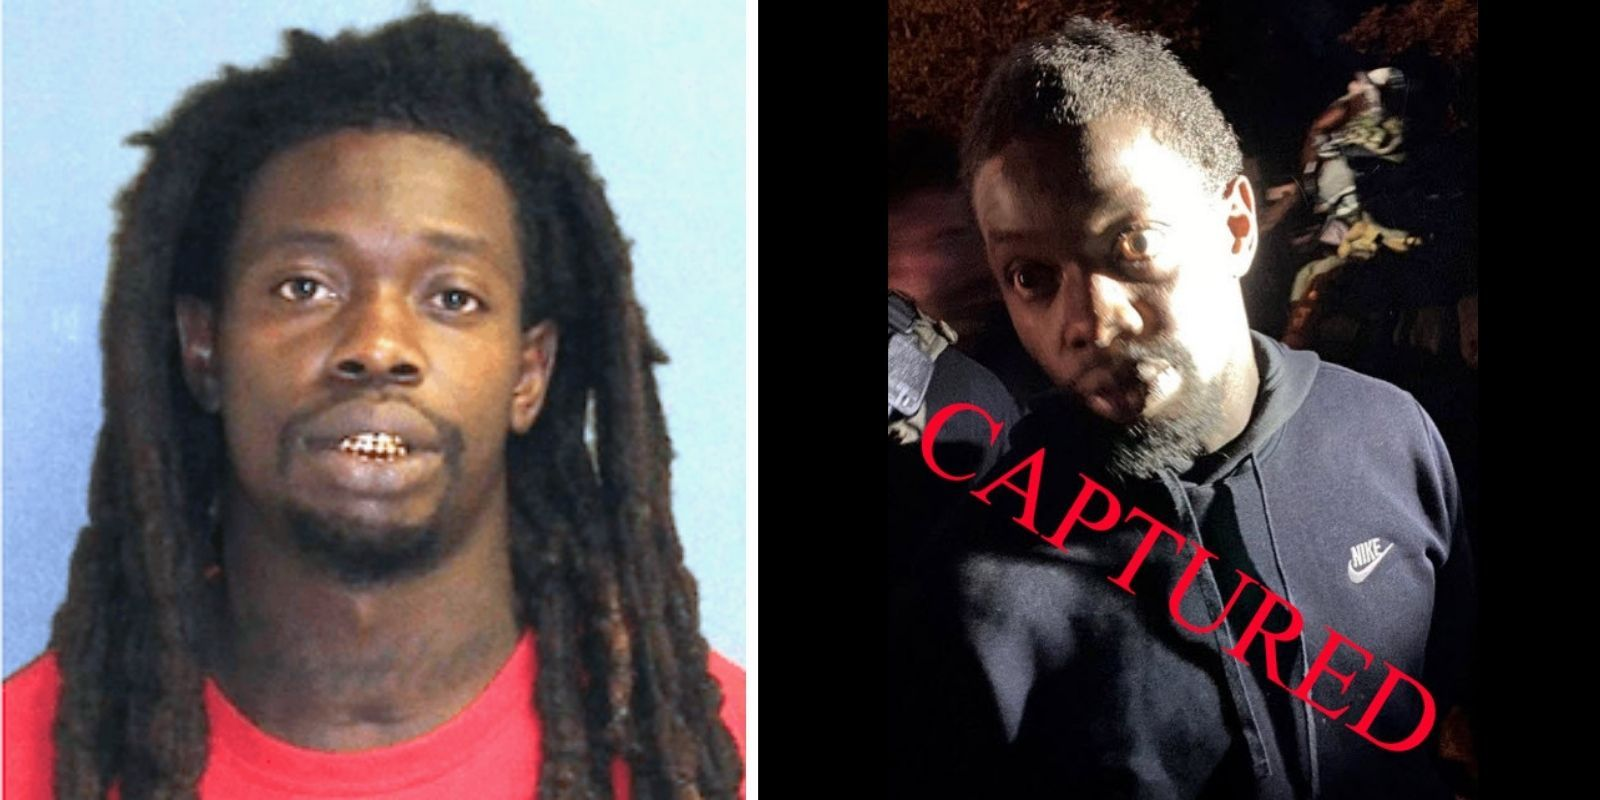 Man suspected of shooting Daytona Beach officer captured at black nationalist encampment with arsenal of weapons